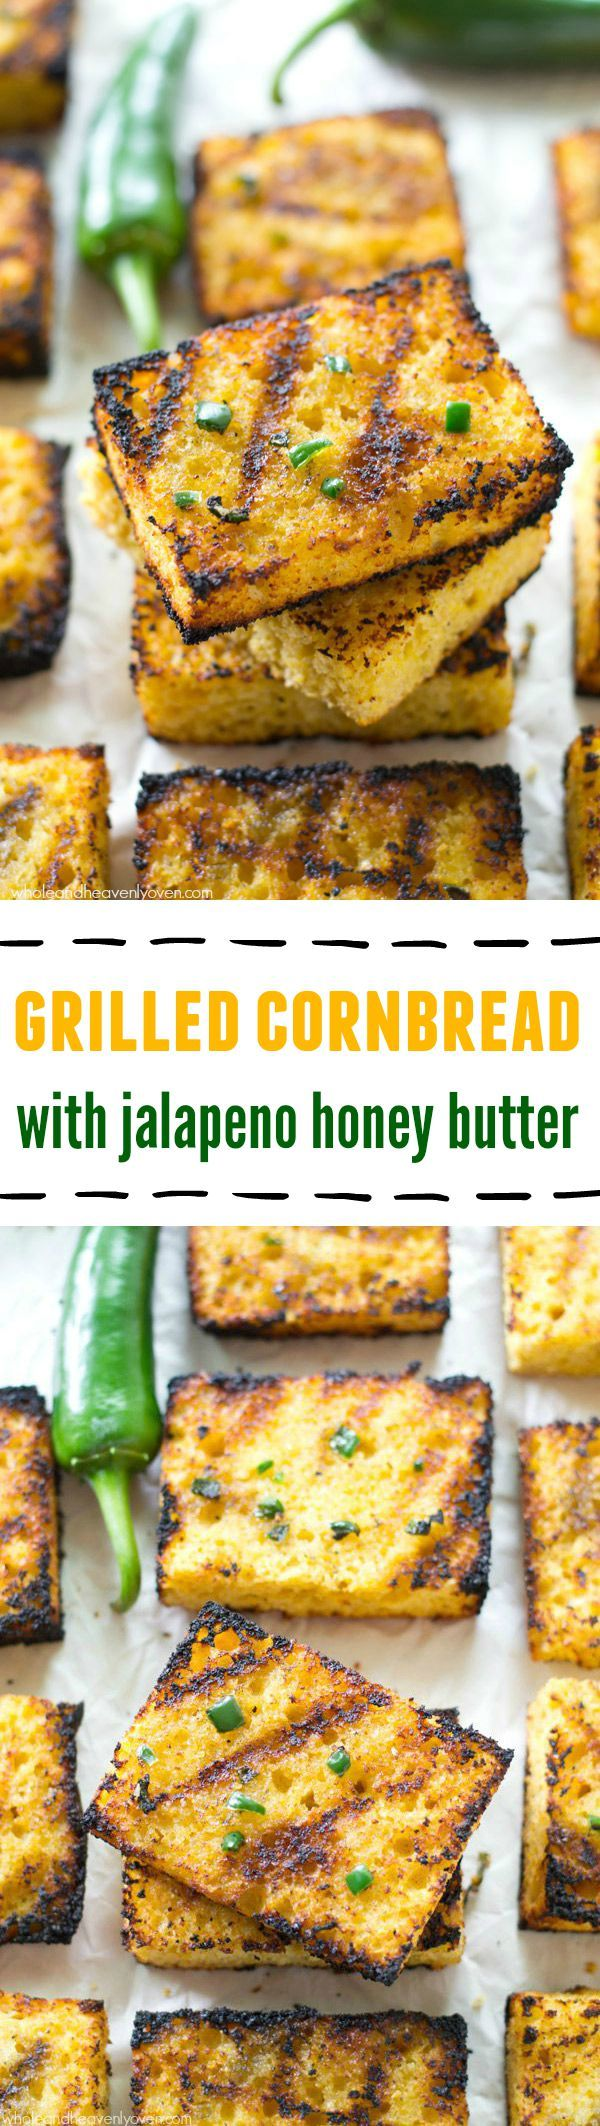 Grilled Cornbread with Jalapeno Honey Butter by wholeandheavenlyoven: Soft, irresistible homemade cornbread squares are slathered up with a kickin' jalapeno honey butter and then quickly cooked on the grill to crisp, buttery heaven.